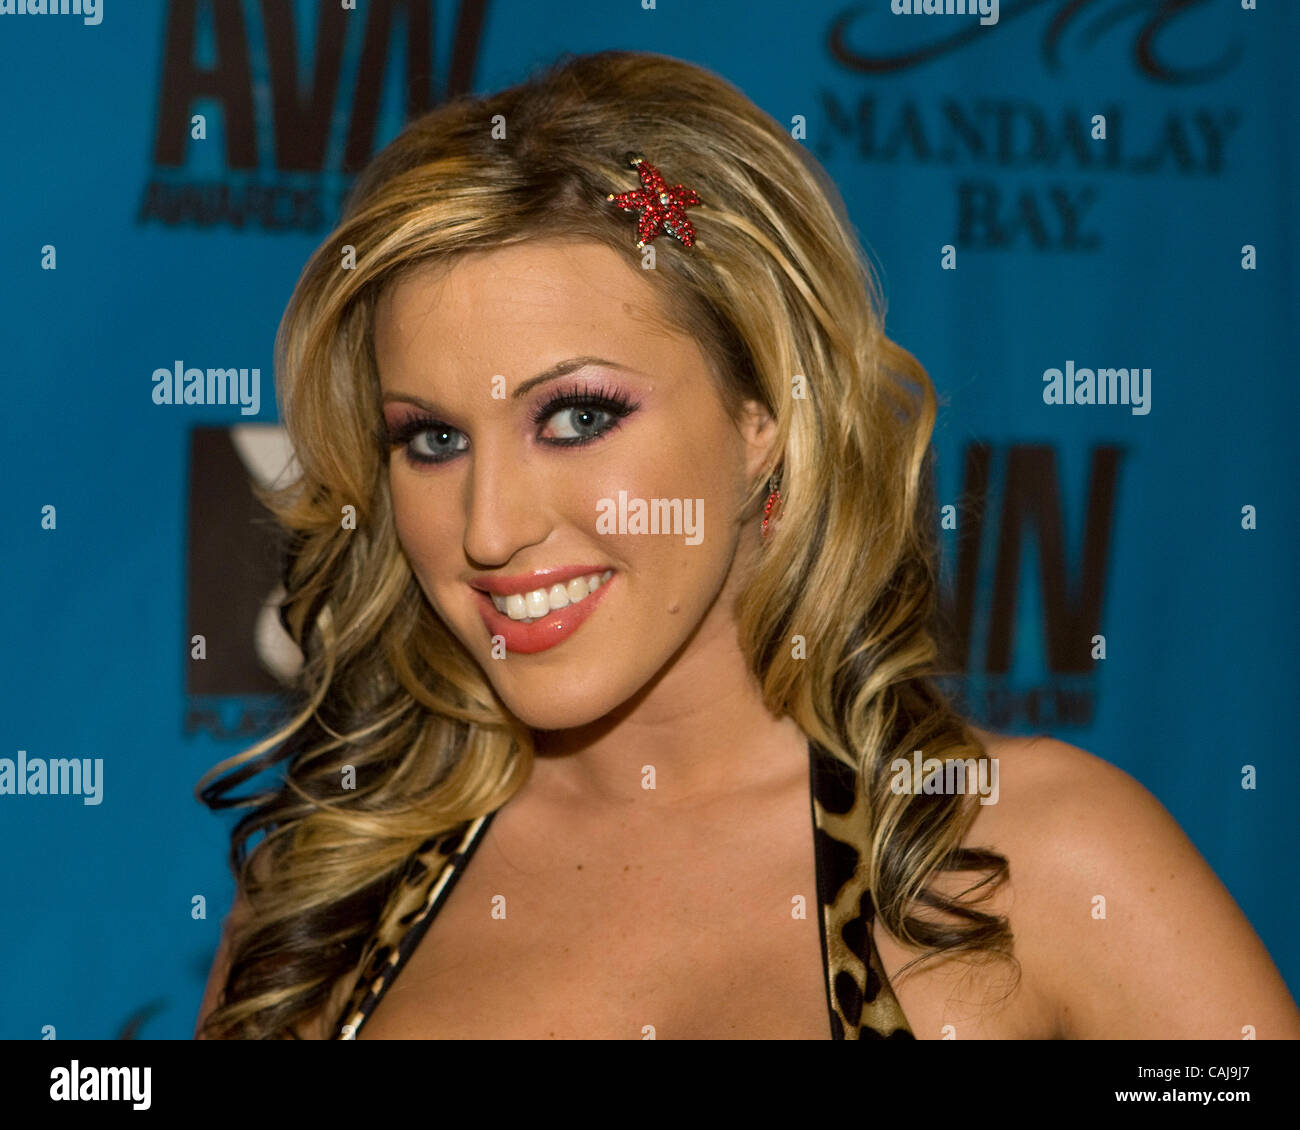 Memphis Monroe At The 25th Annual Avn Adult Movie Awardsmandaly Bay Events Center Las Vegas Nevada